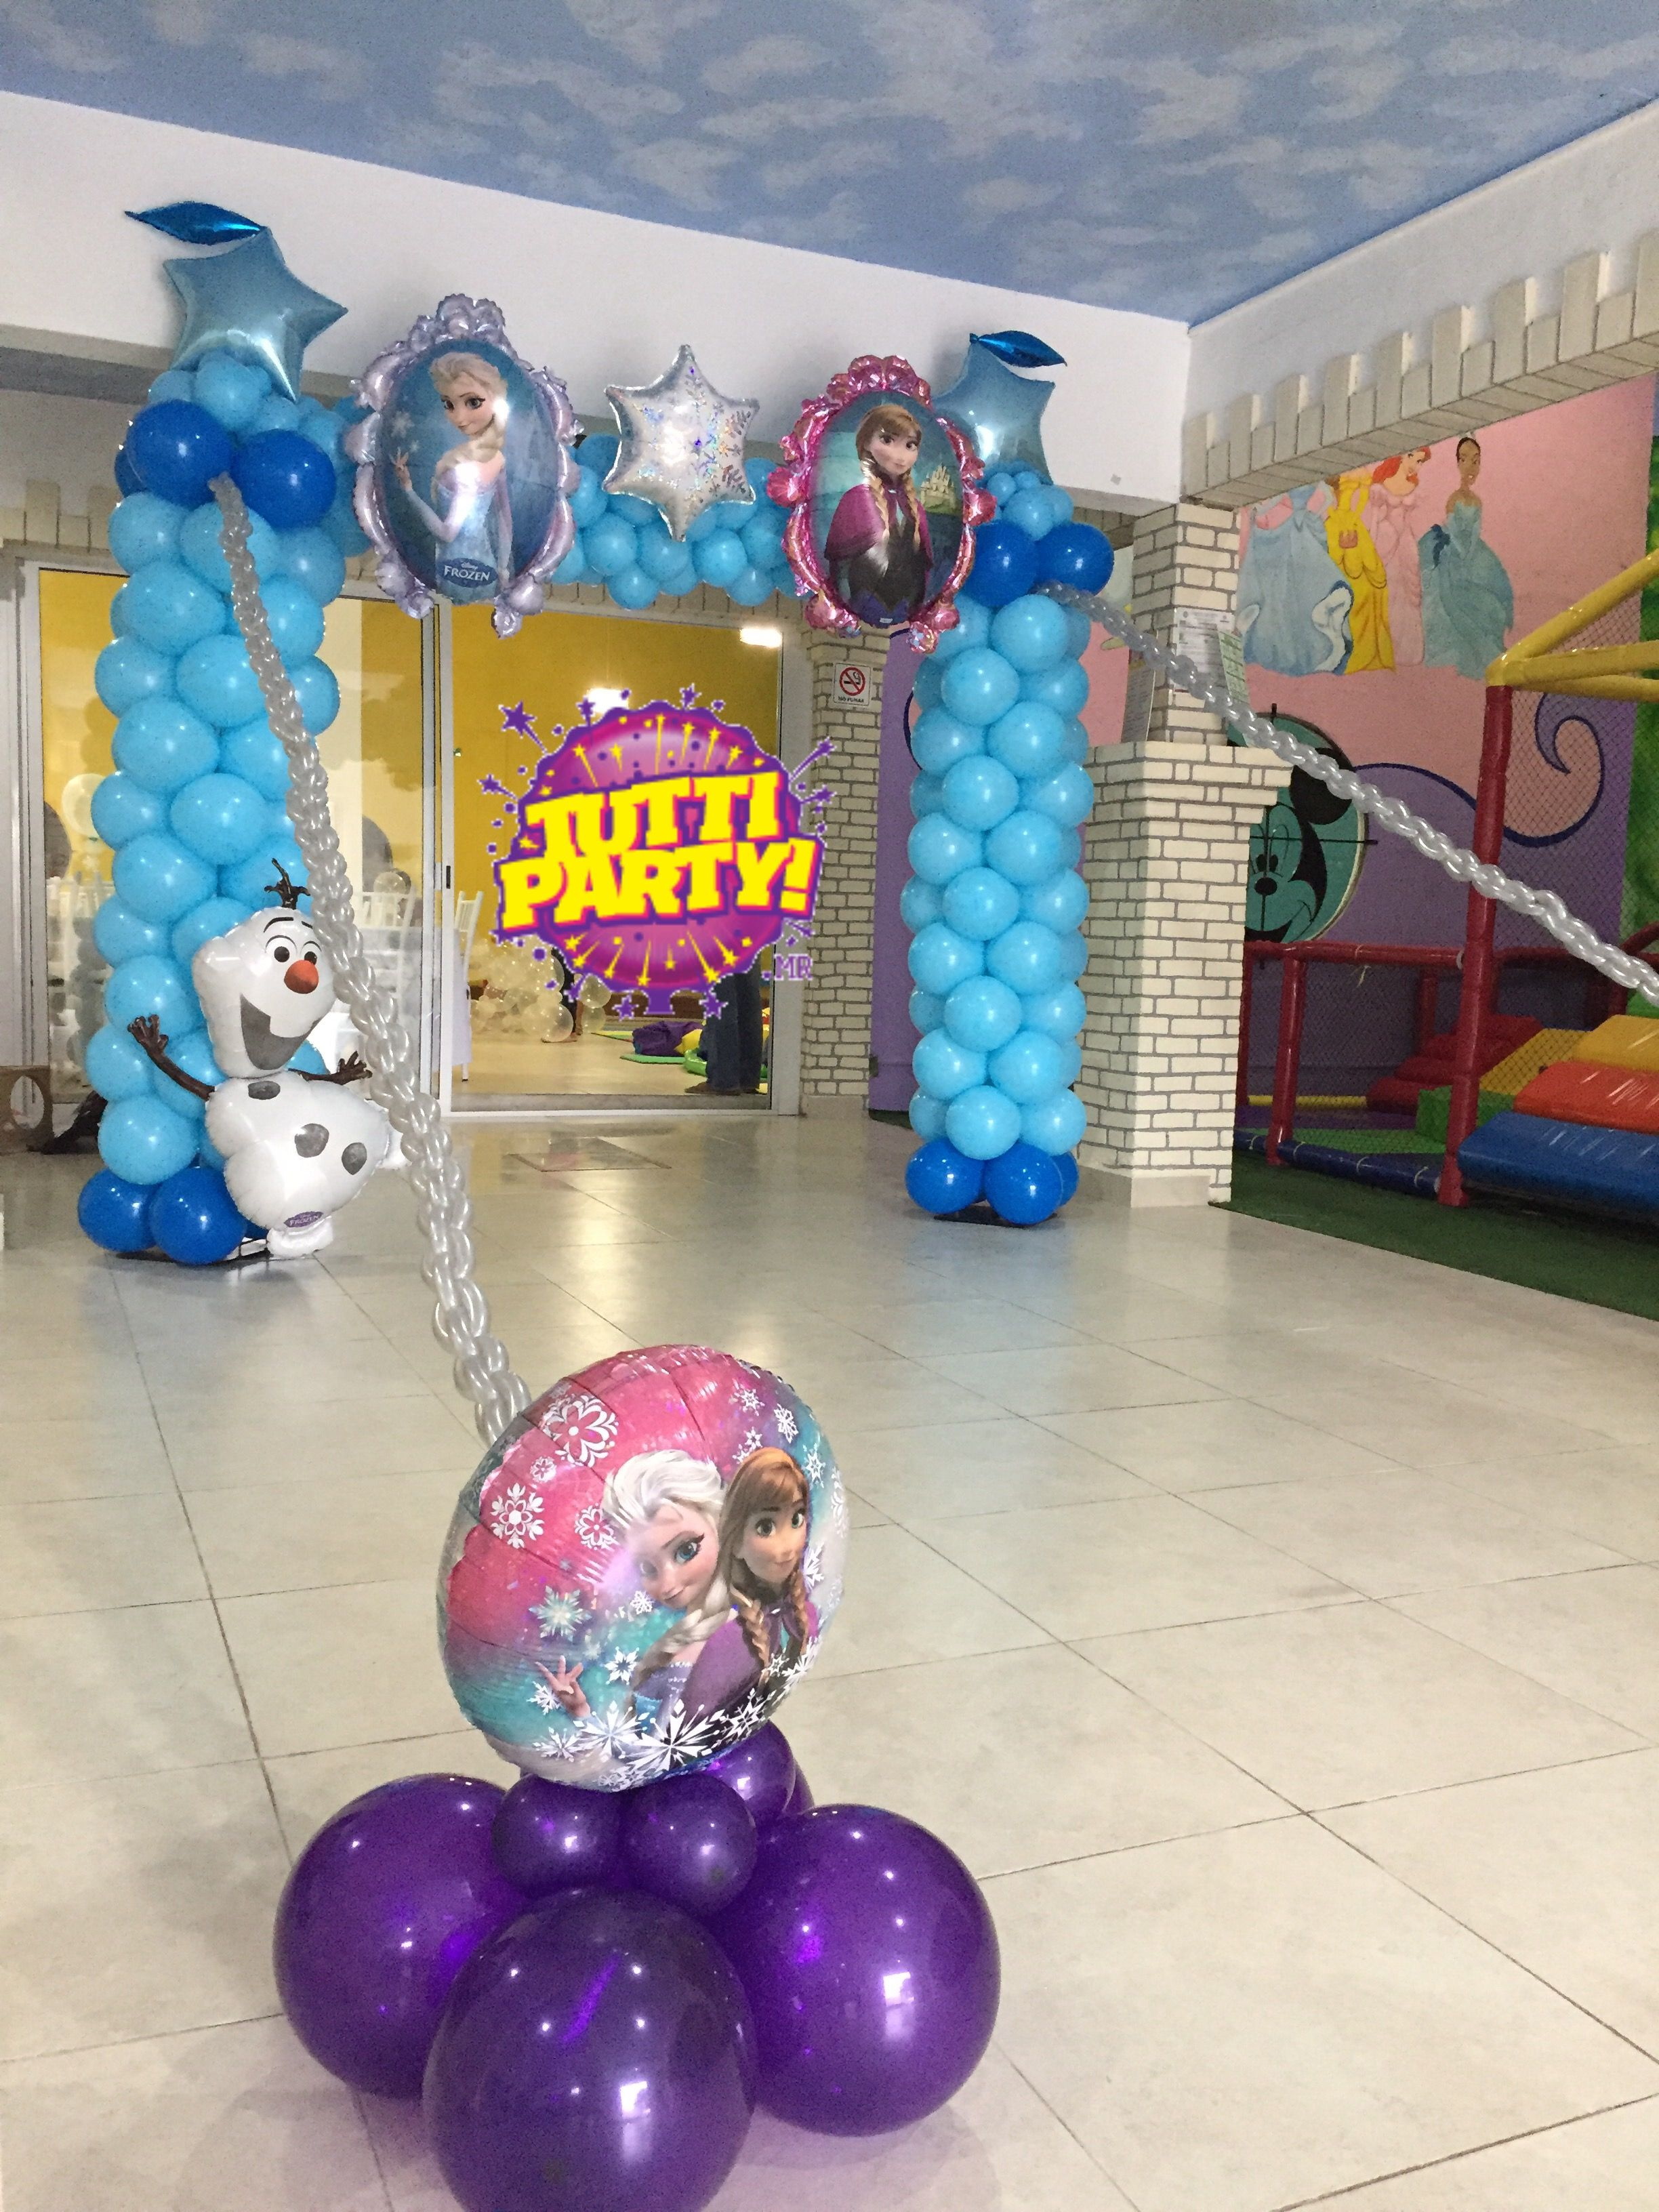 Party balloons decorations - Frozen Party Balloons Archivo Frozen Decorations Frozen Party Ideas Tuttiparty Party Store